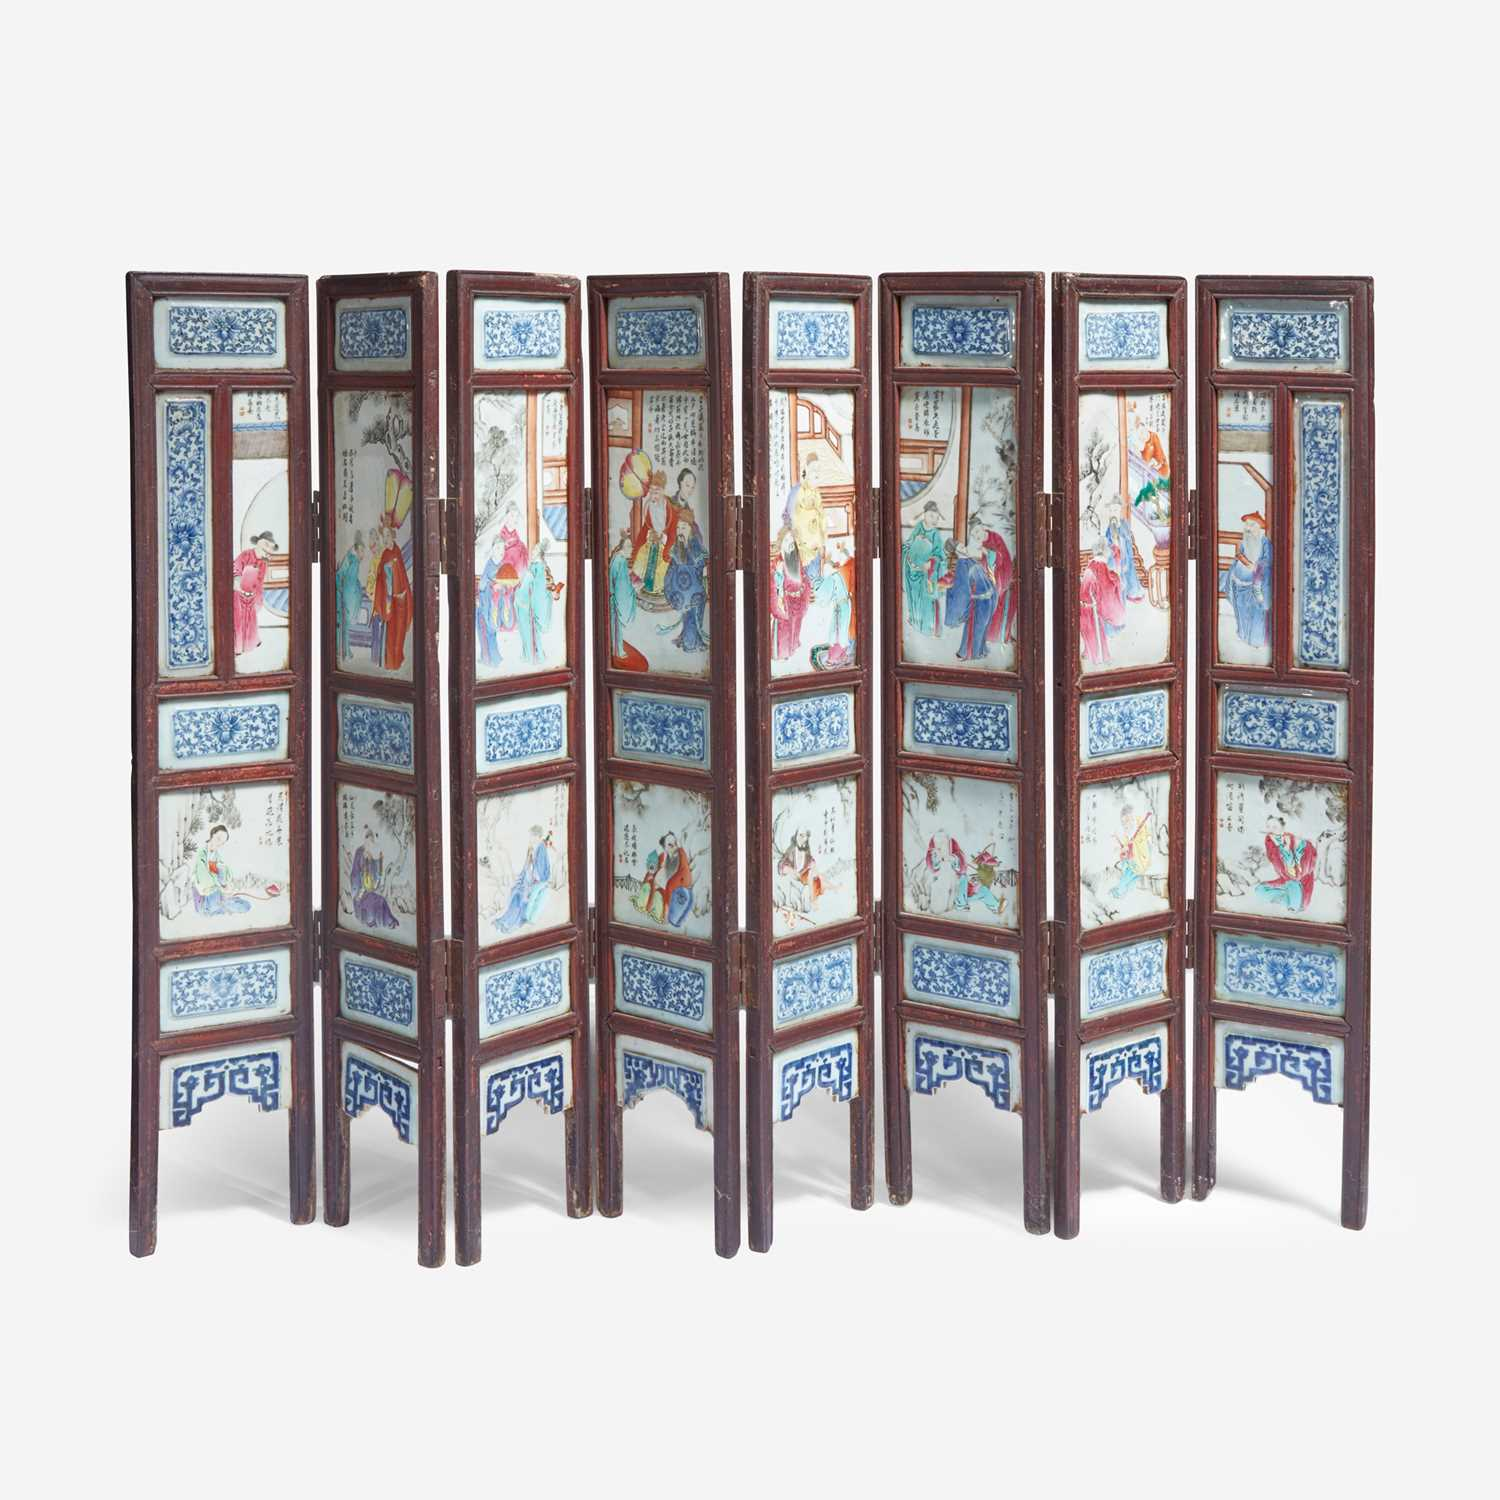 Lot 61 - A Chinese famille rose-porcelain mounted eight-panel screen 洋彩八开瓷屏风